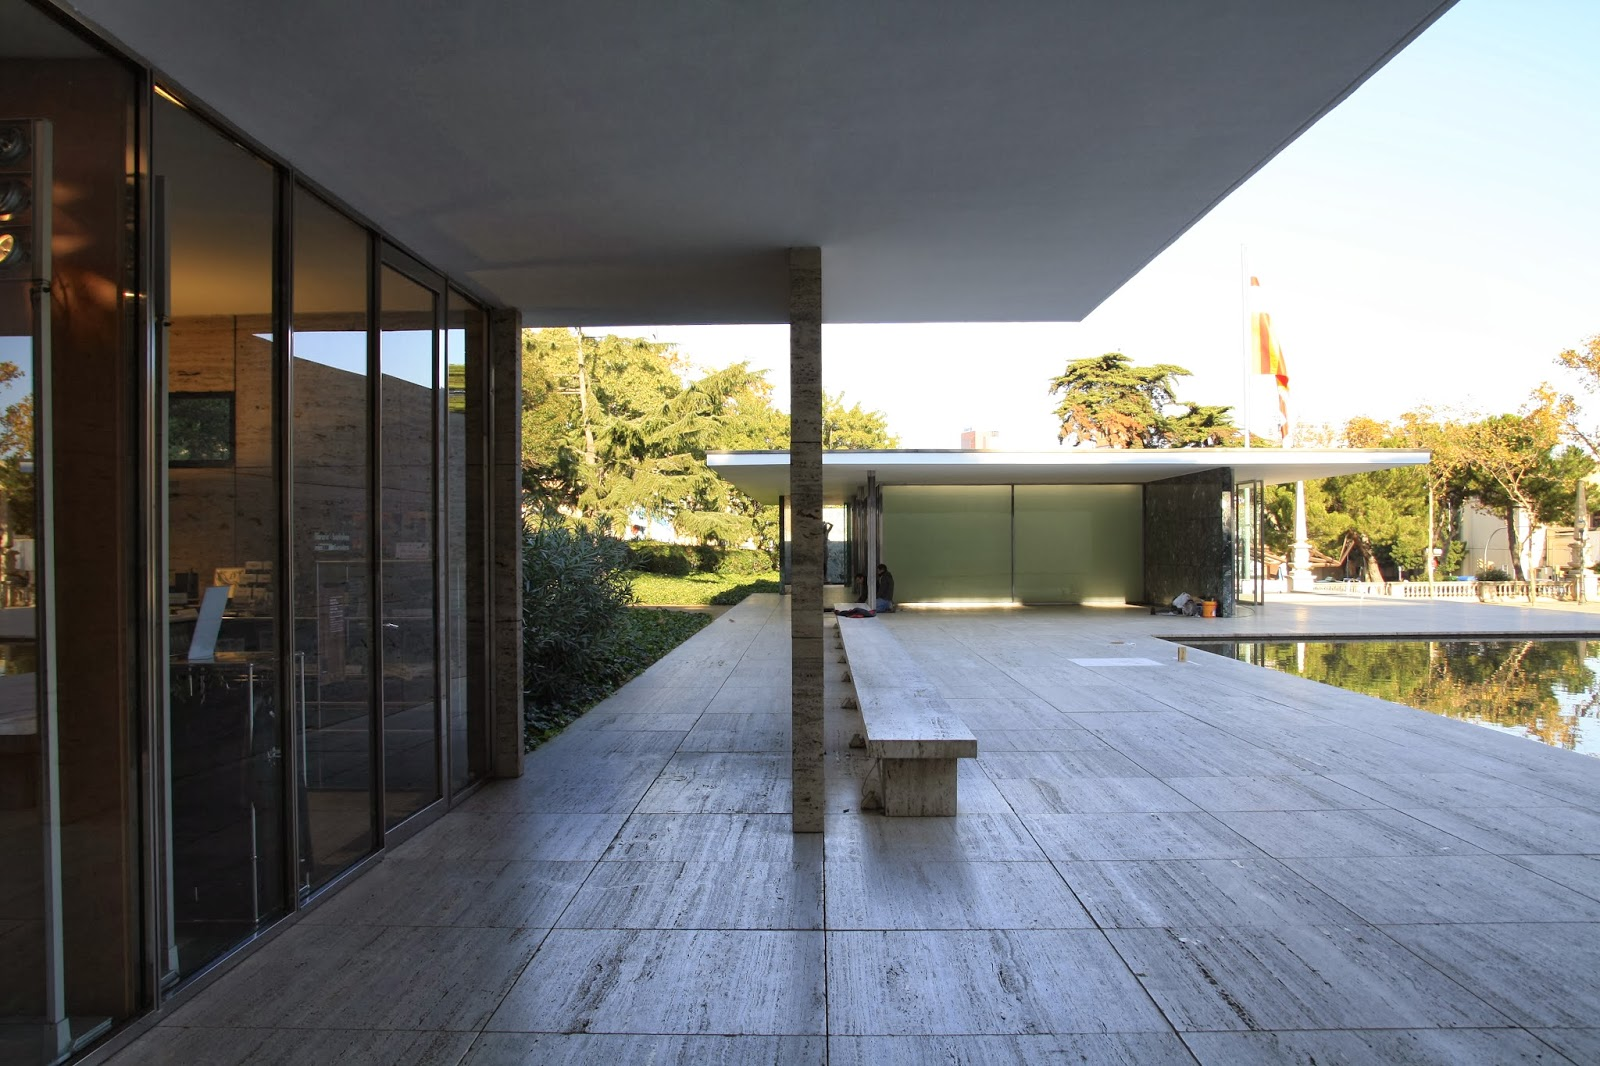 mies van der rohe barcelona pavilion capturing architecture. Black Bedroom Furniture Sets. Home Design Ideas